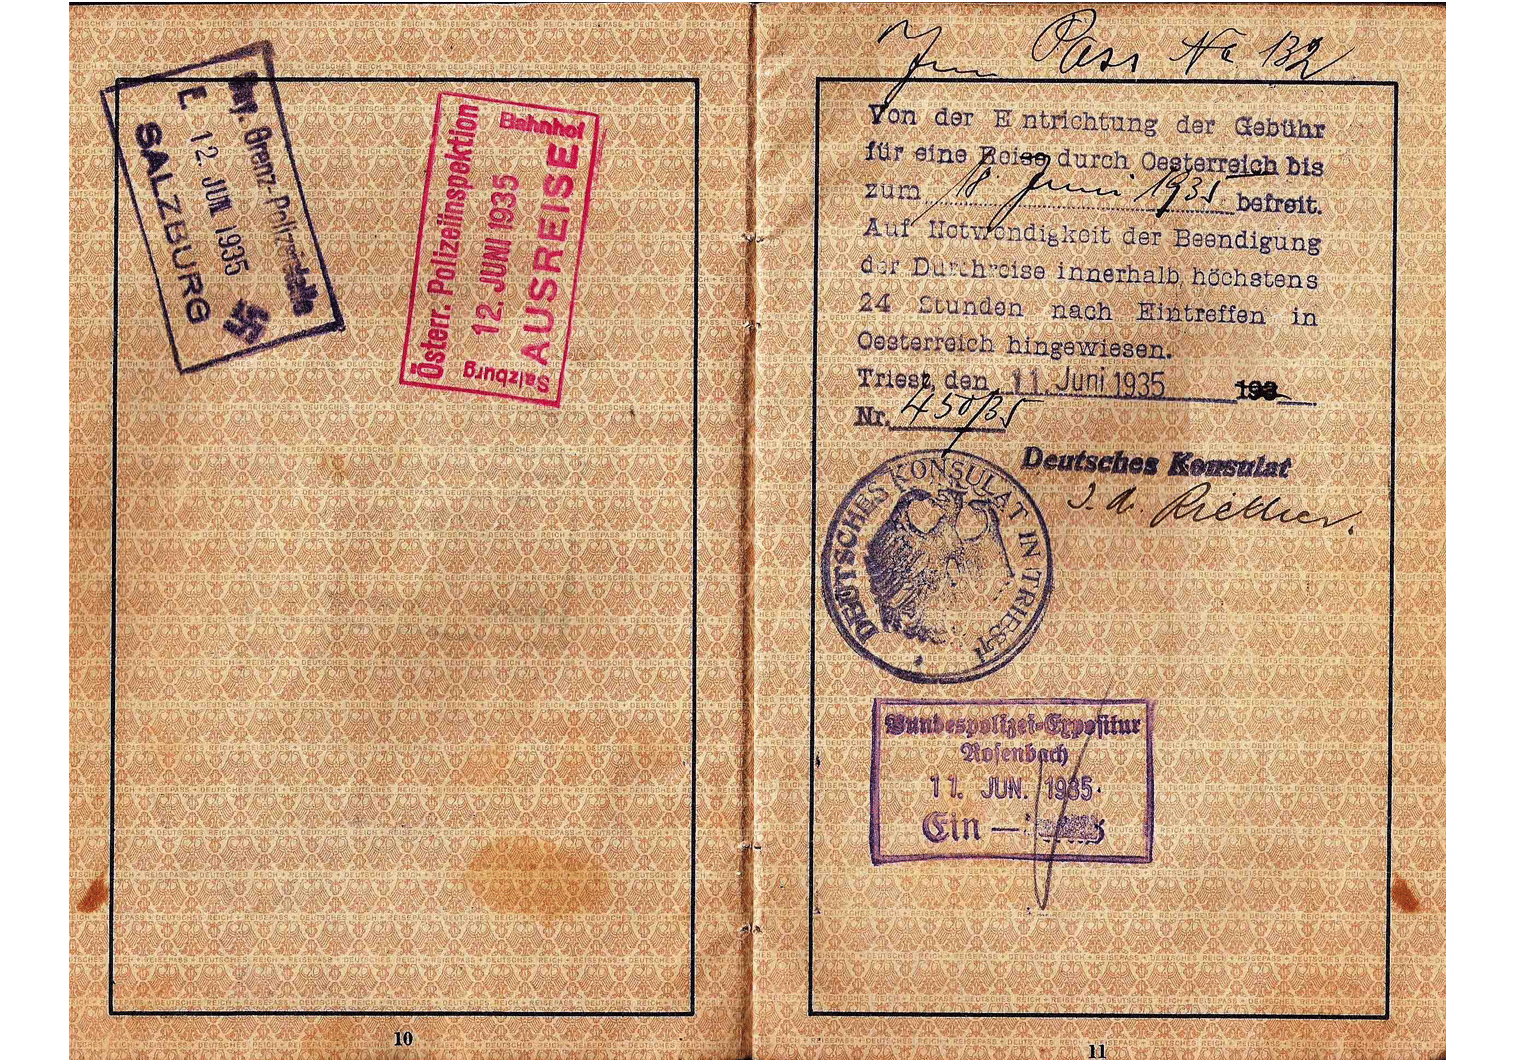 1936 German consulate visa